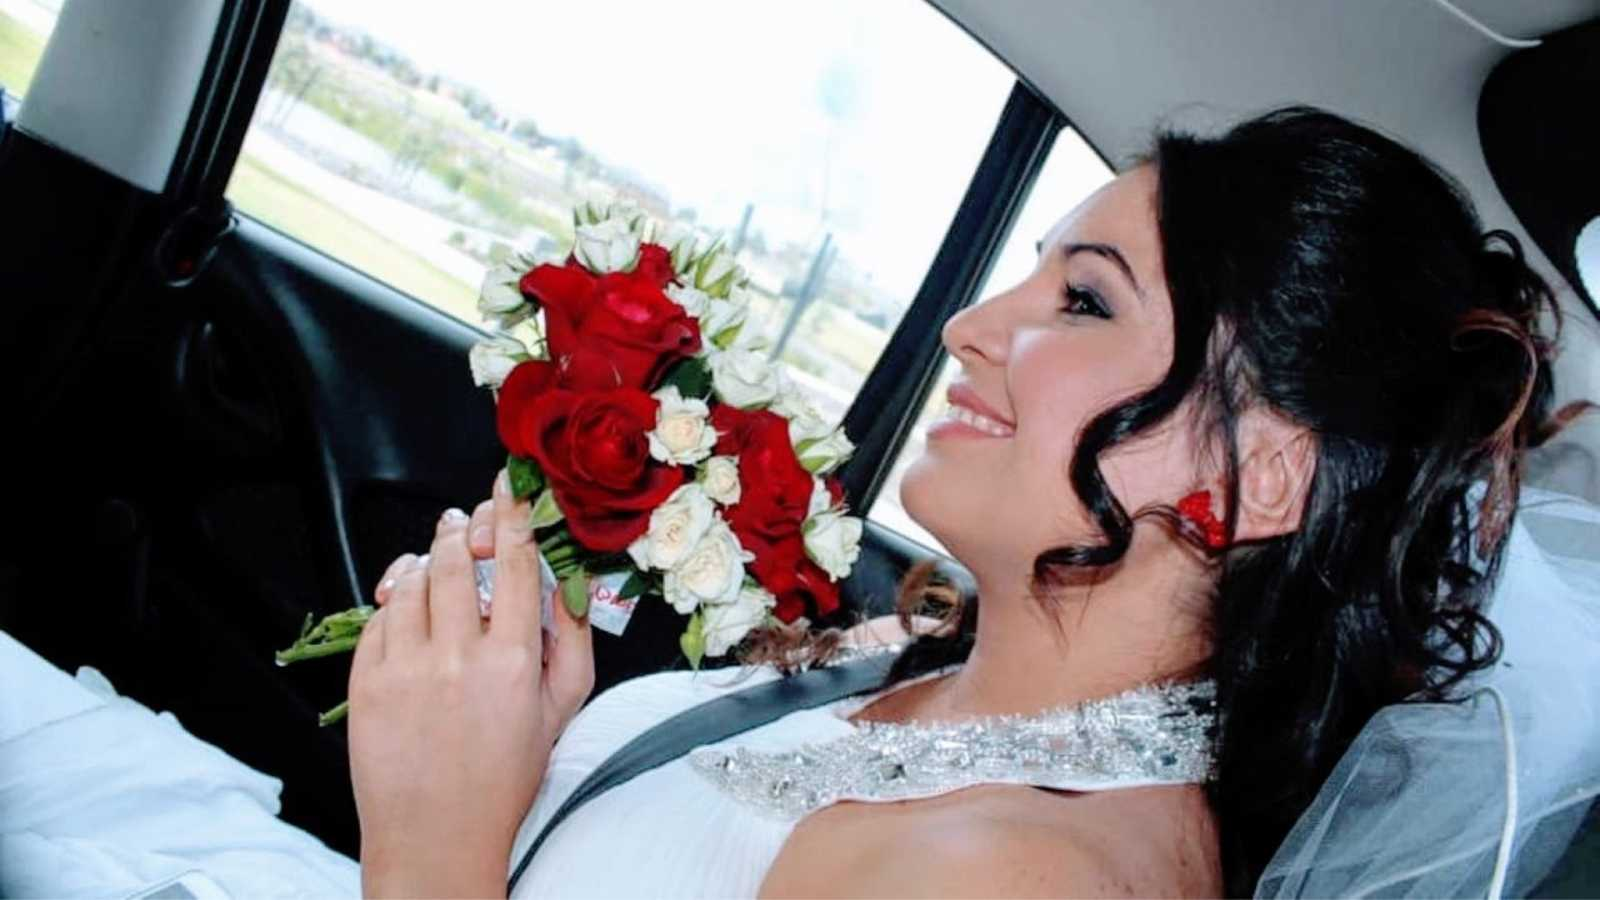 Beautiful young woman smiles on her wedding day with a red and white bouquet